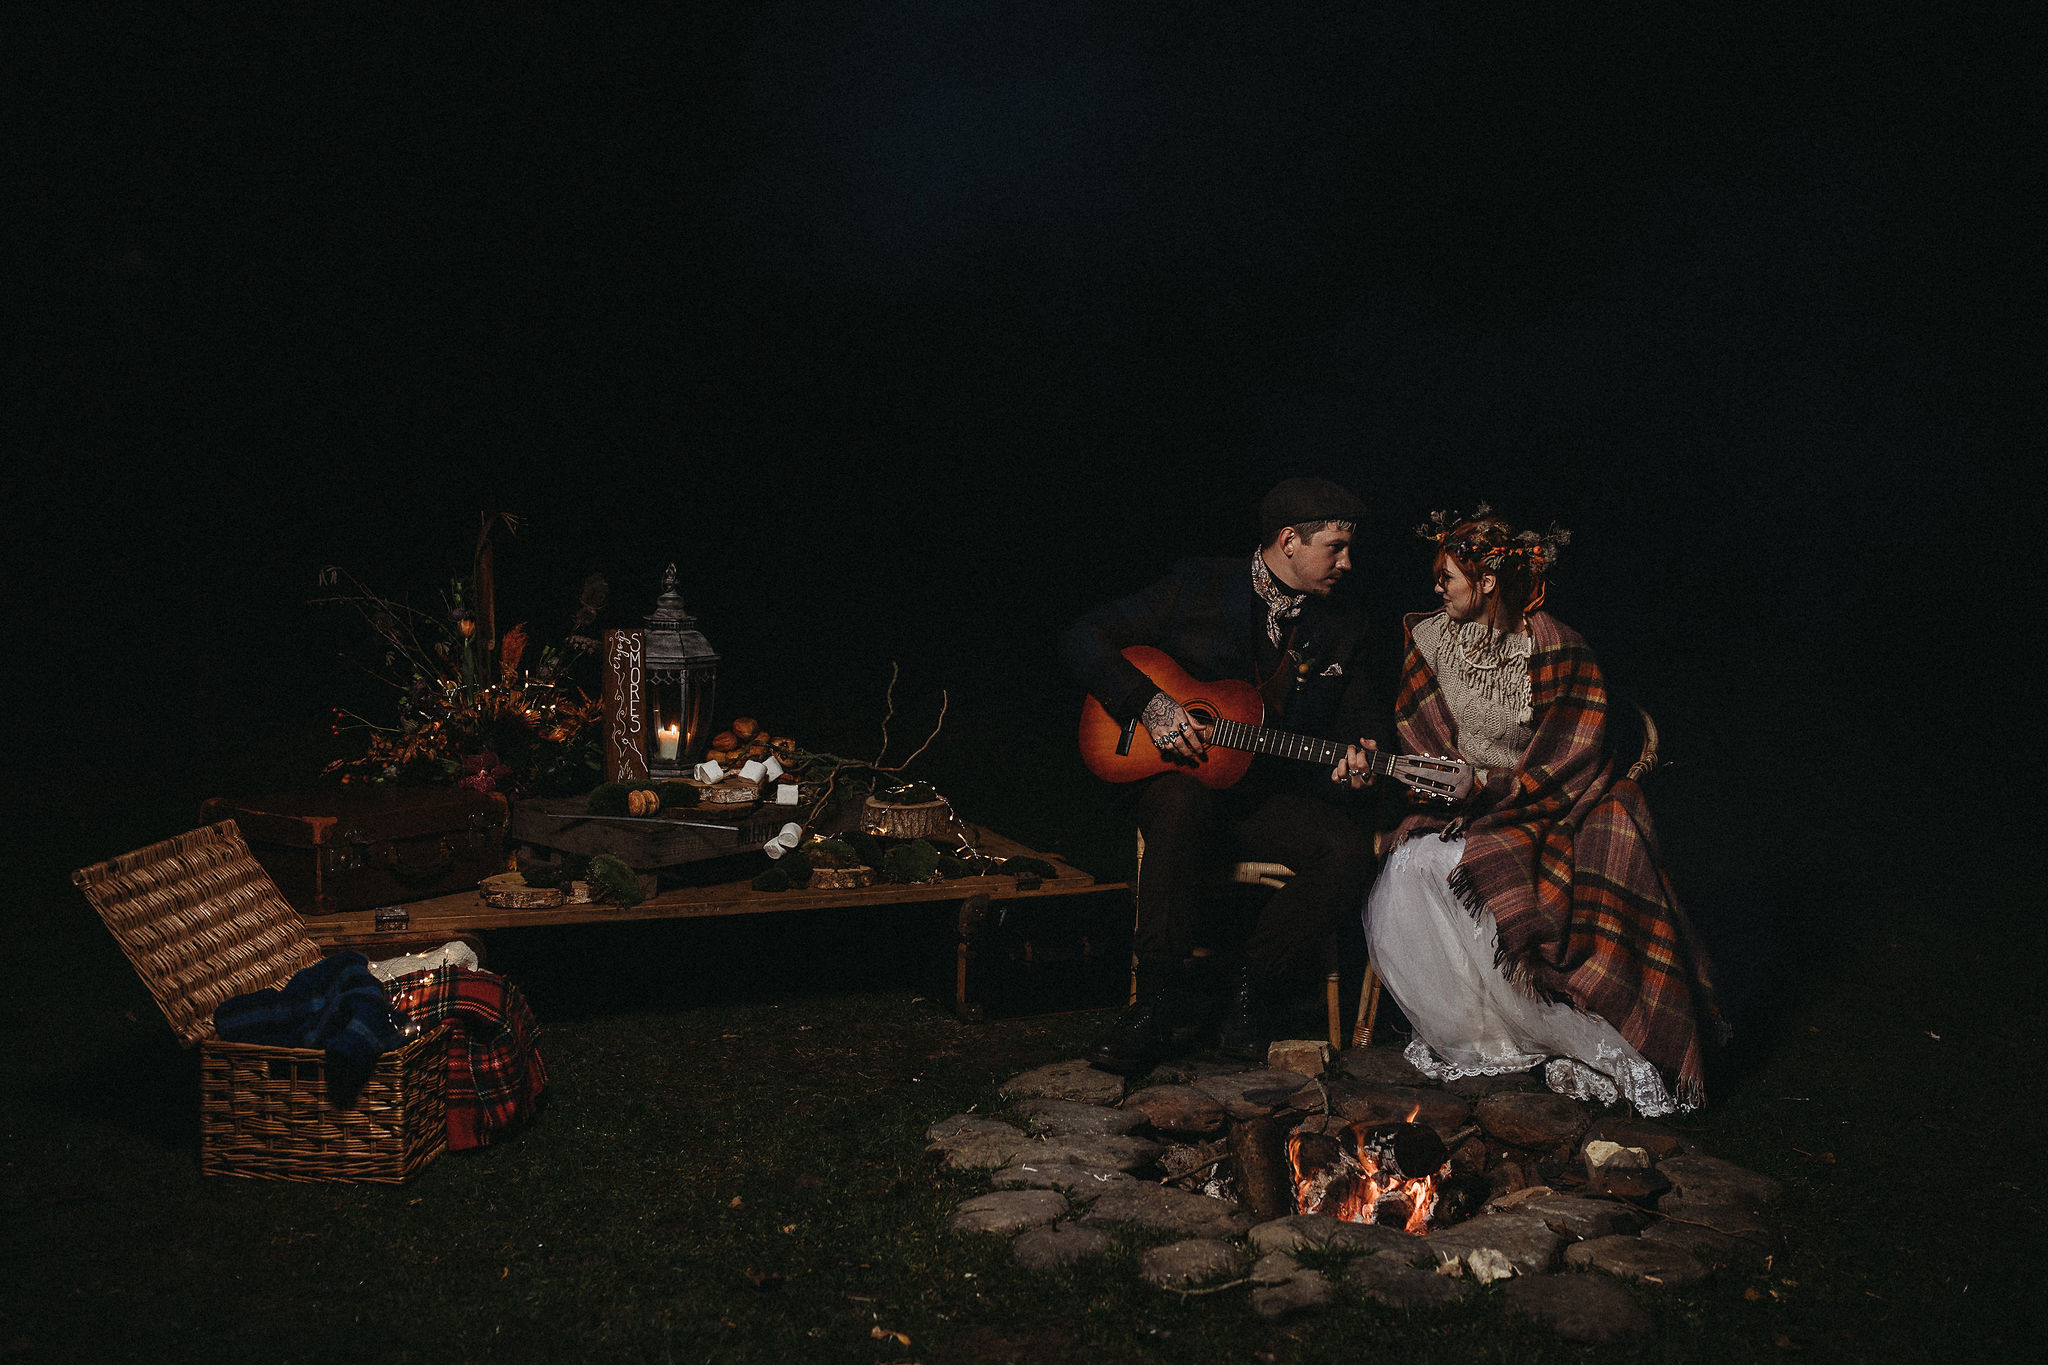 Wedding by the campfire